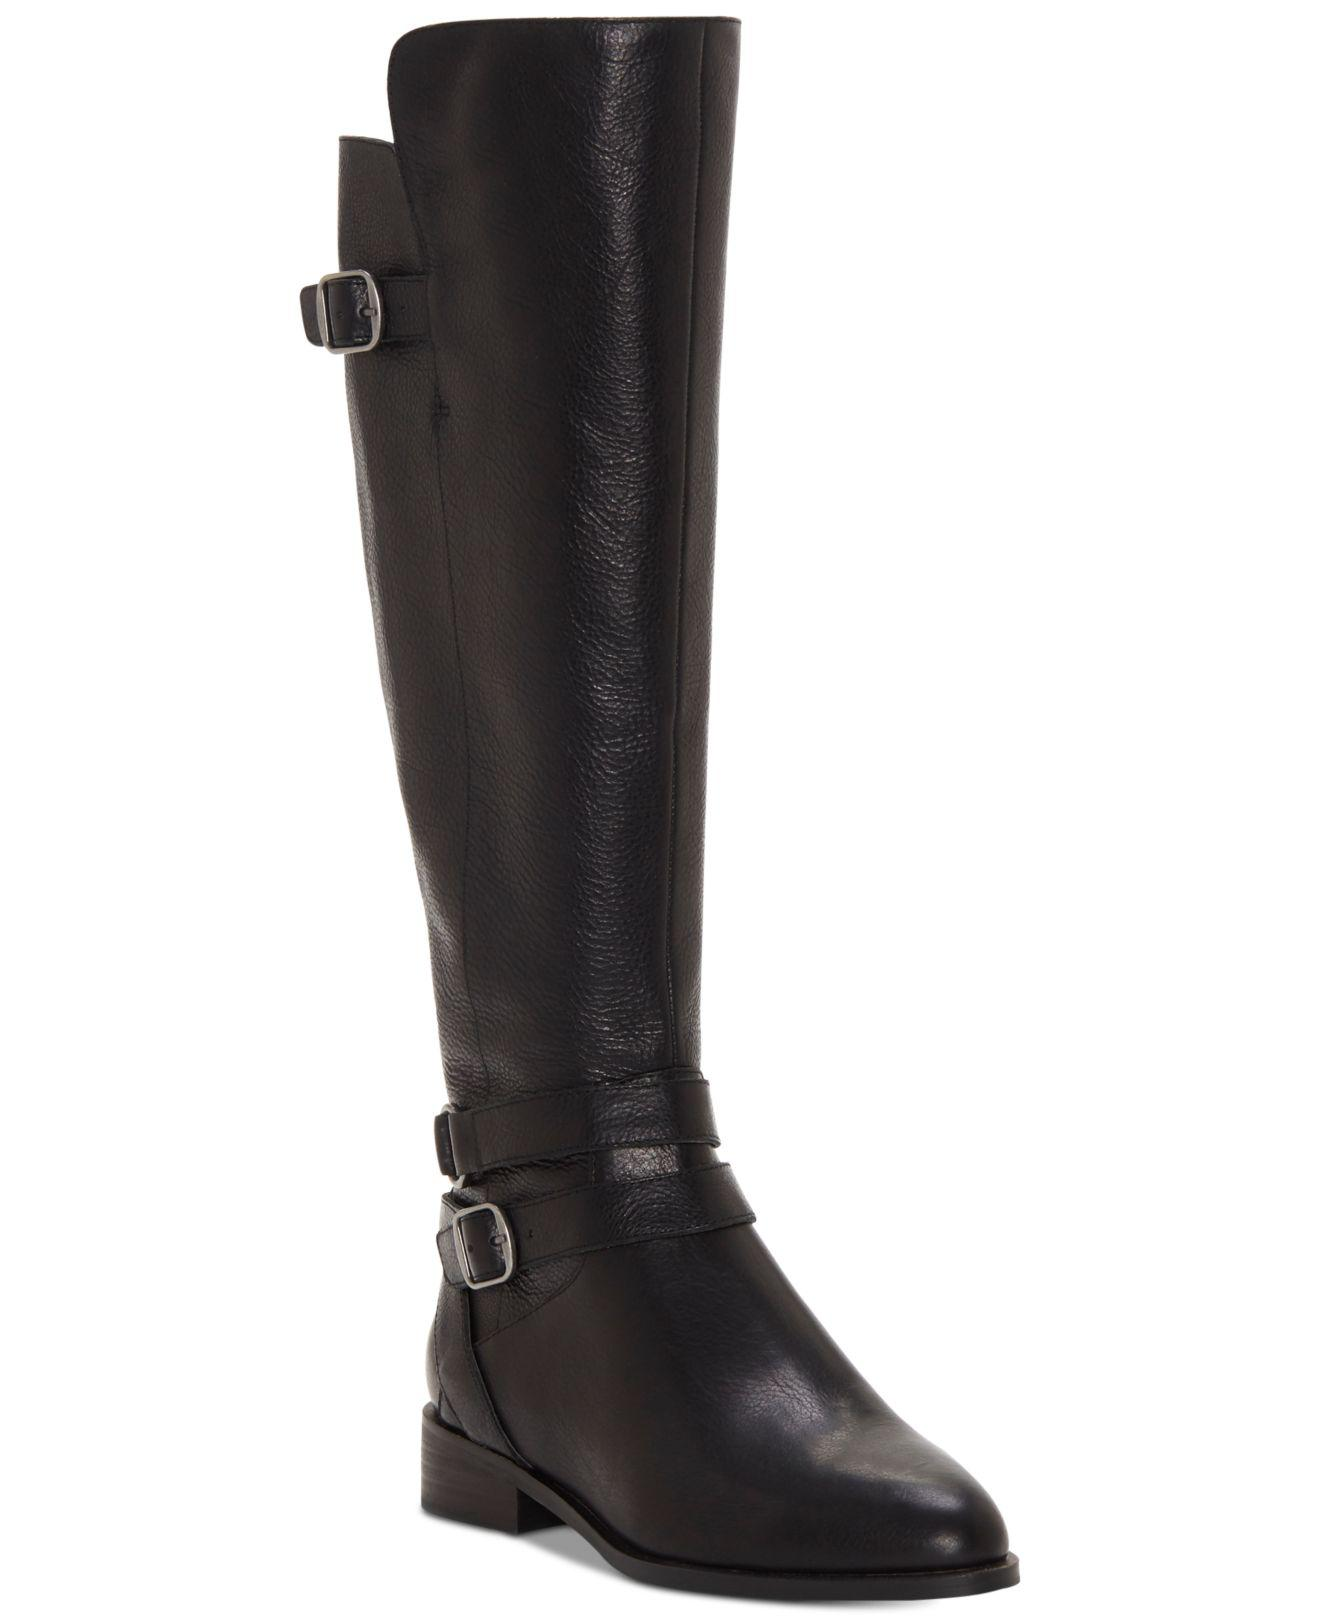 6cc1e73c3 Lyst - Lucky Brand Paxtreen Wide Calf Knee High Boot in Black - Save 41%